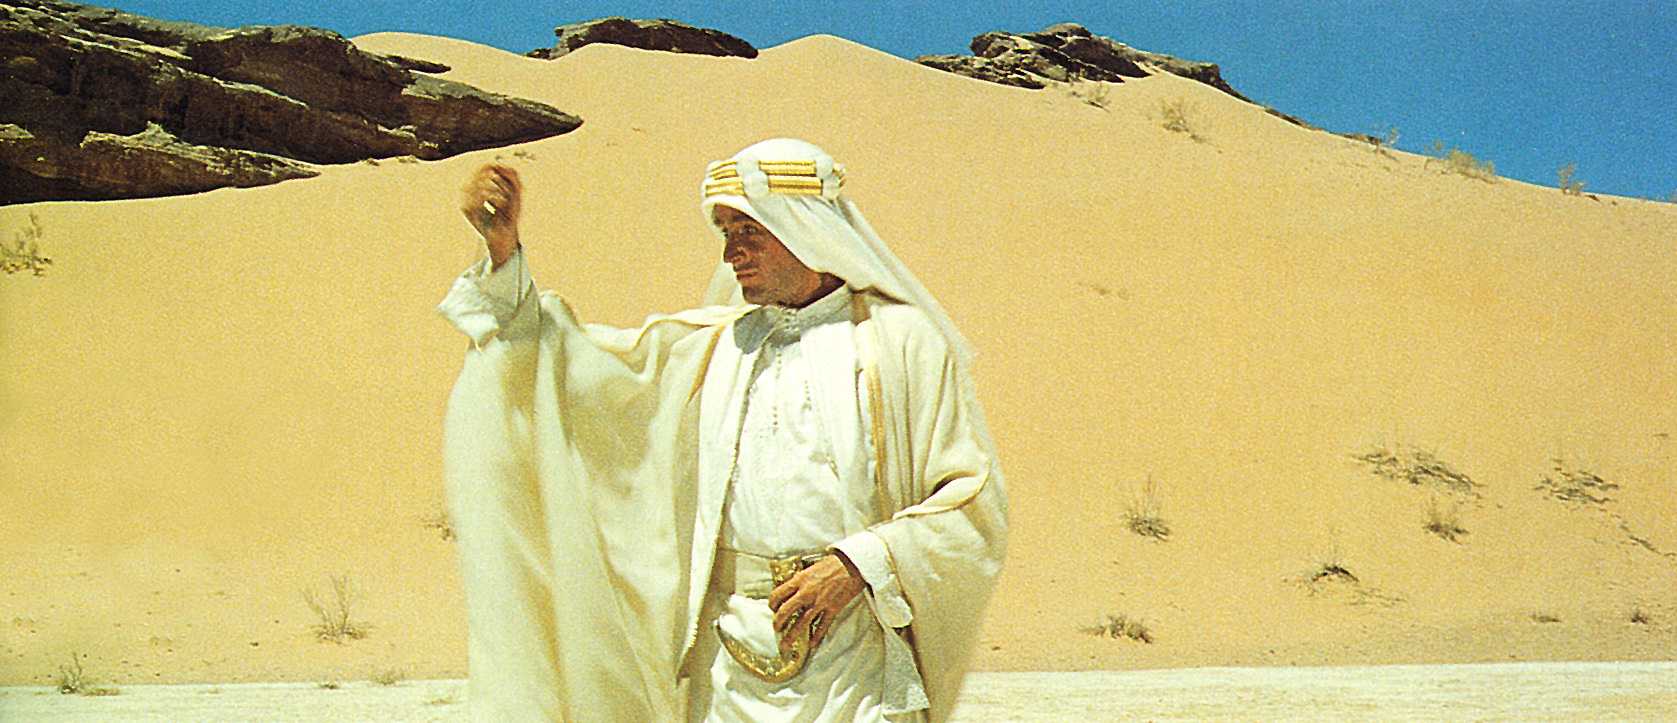 LAWRENCE OD ARABIJE, D. Lean (Peter O'Toole)